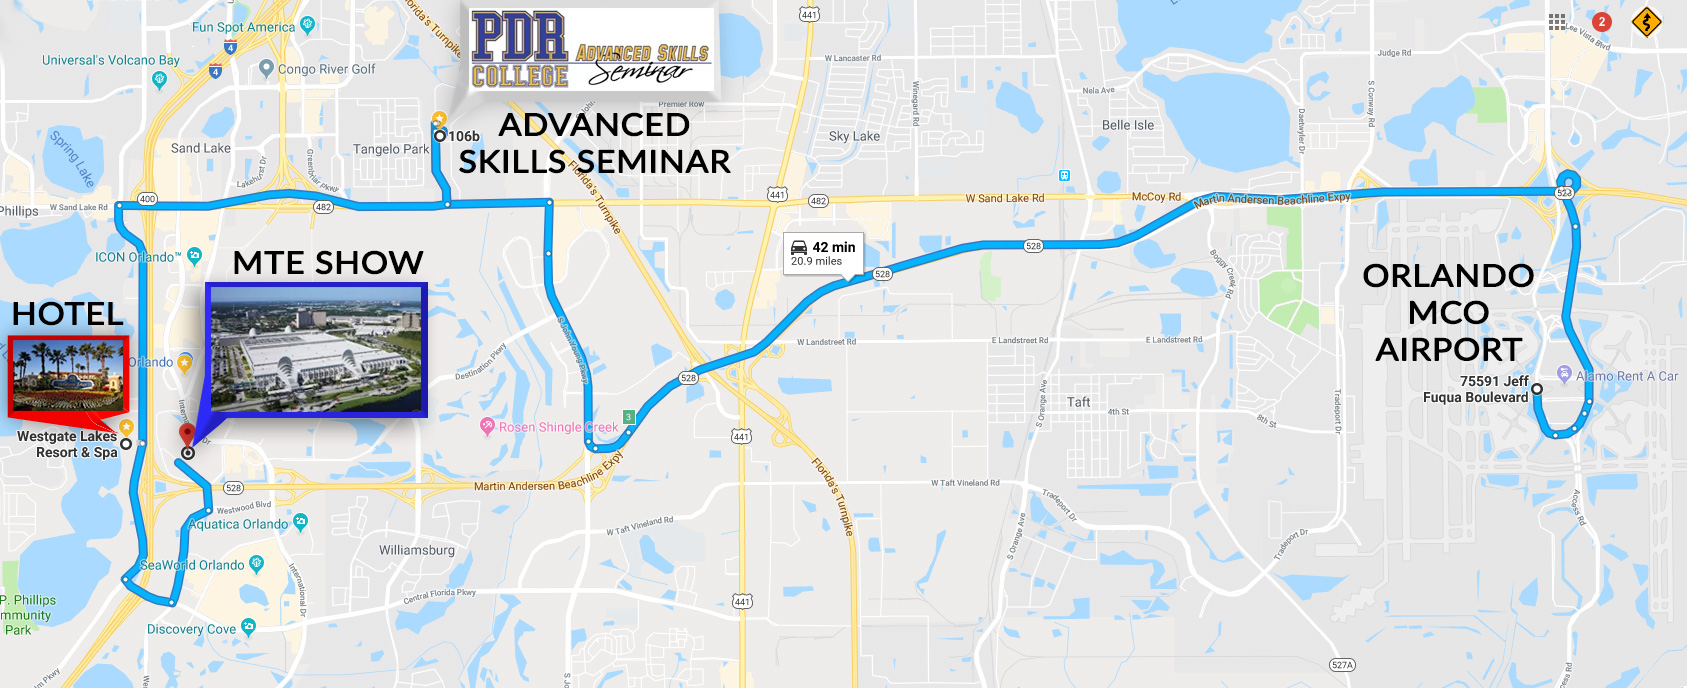 ORLANDO-ADV19-MTE-CONVENTION-CENTER-MAP - PDR College